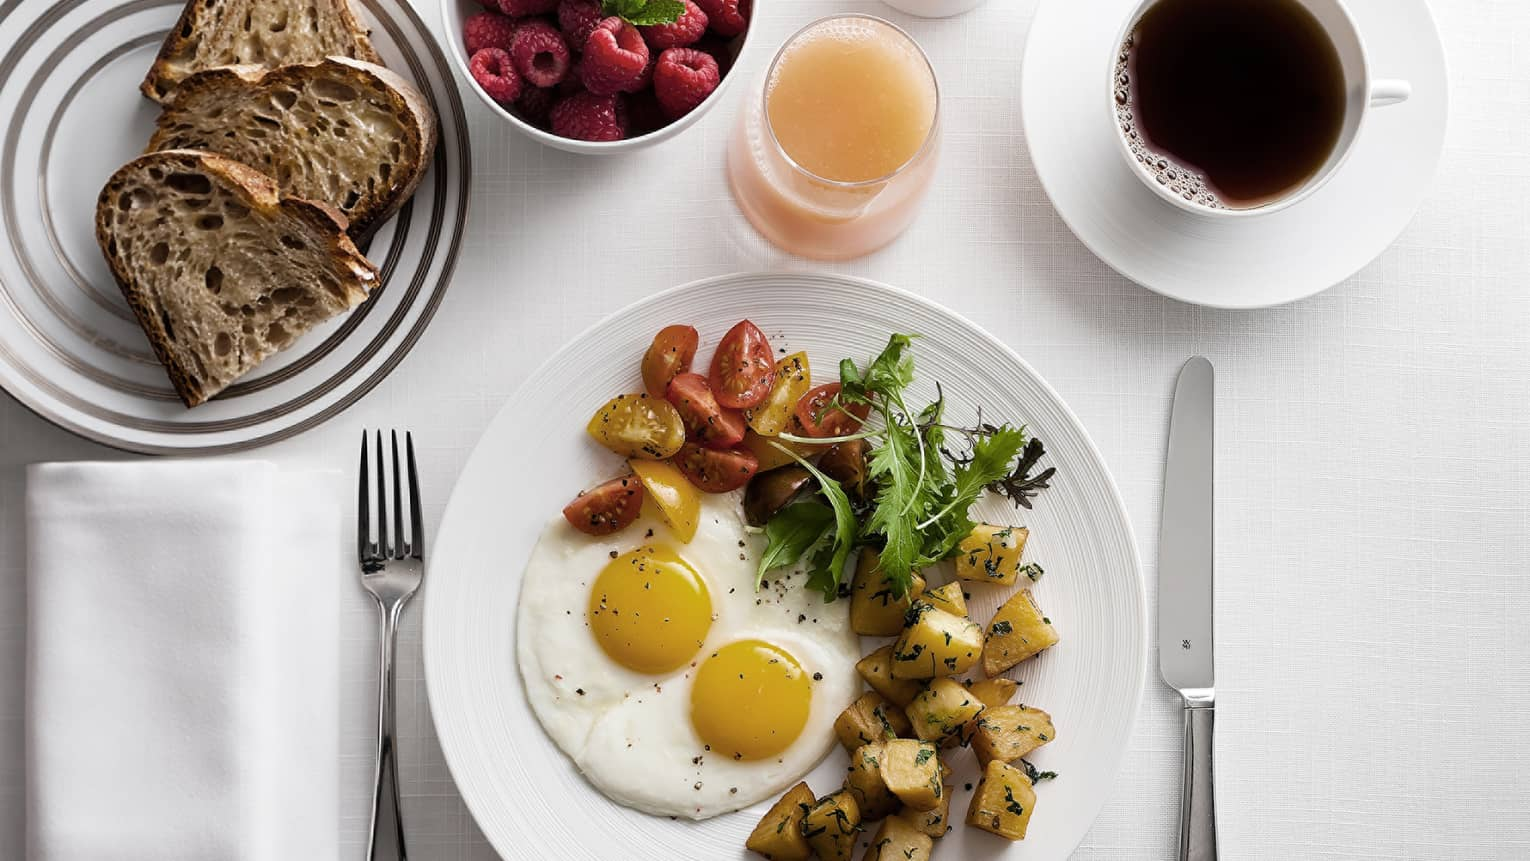 In-bungalow dining breakfast with sunny side egg, roast potatoes and salad, toast, coffee and fresh fruit